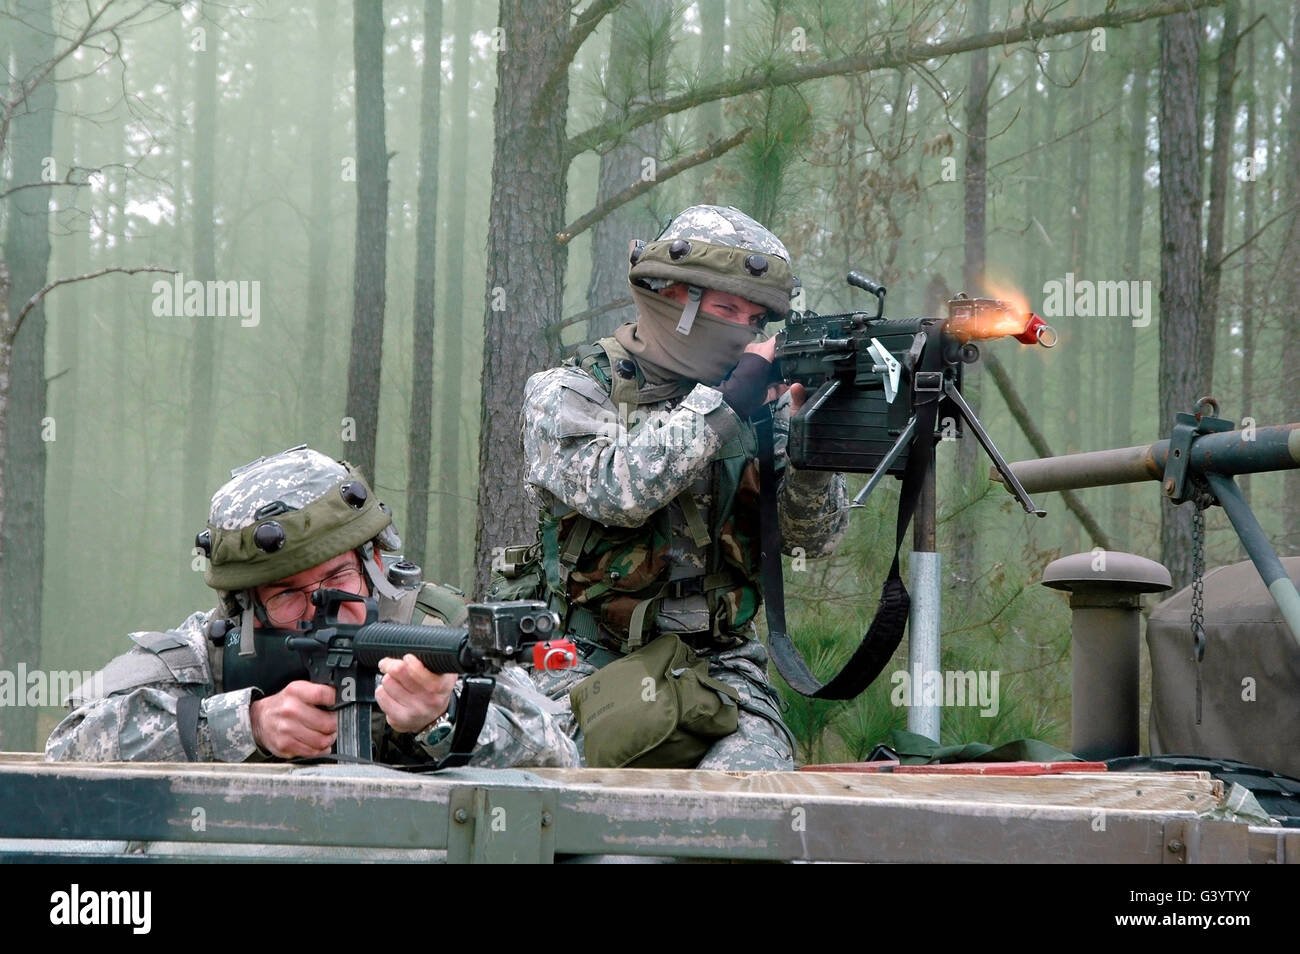 Naval Reservists and Active Duty members under attack. - Stock Image